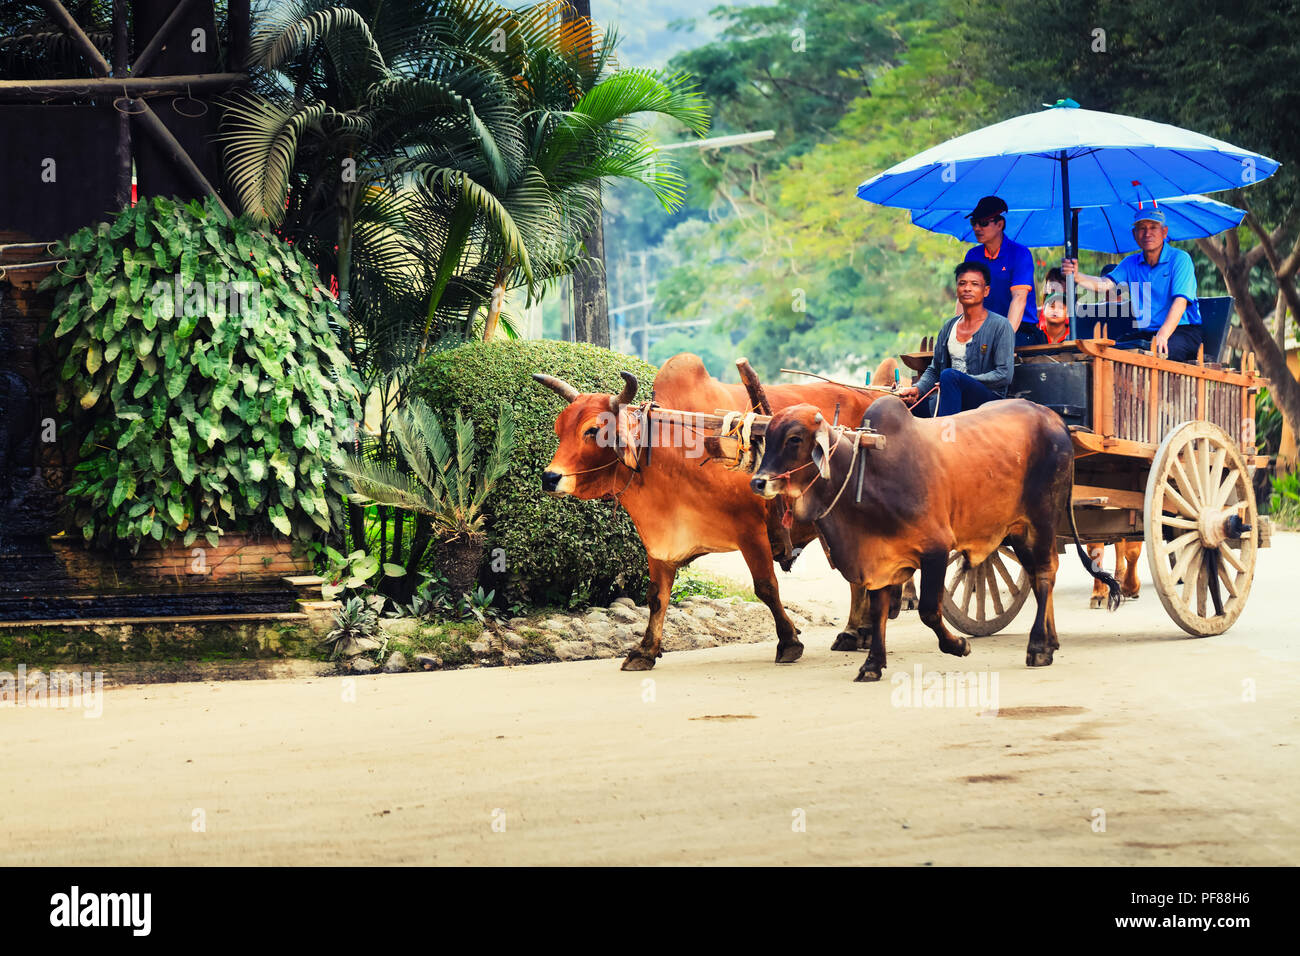 Traveller tourist enjoy travel on oxcart ox cart through jungle in national park - Stock Image